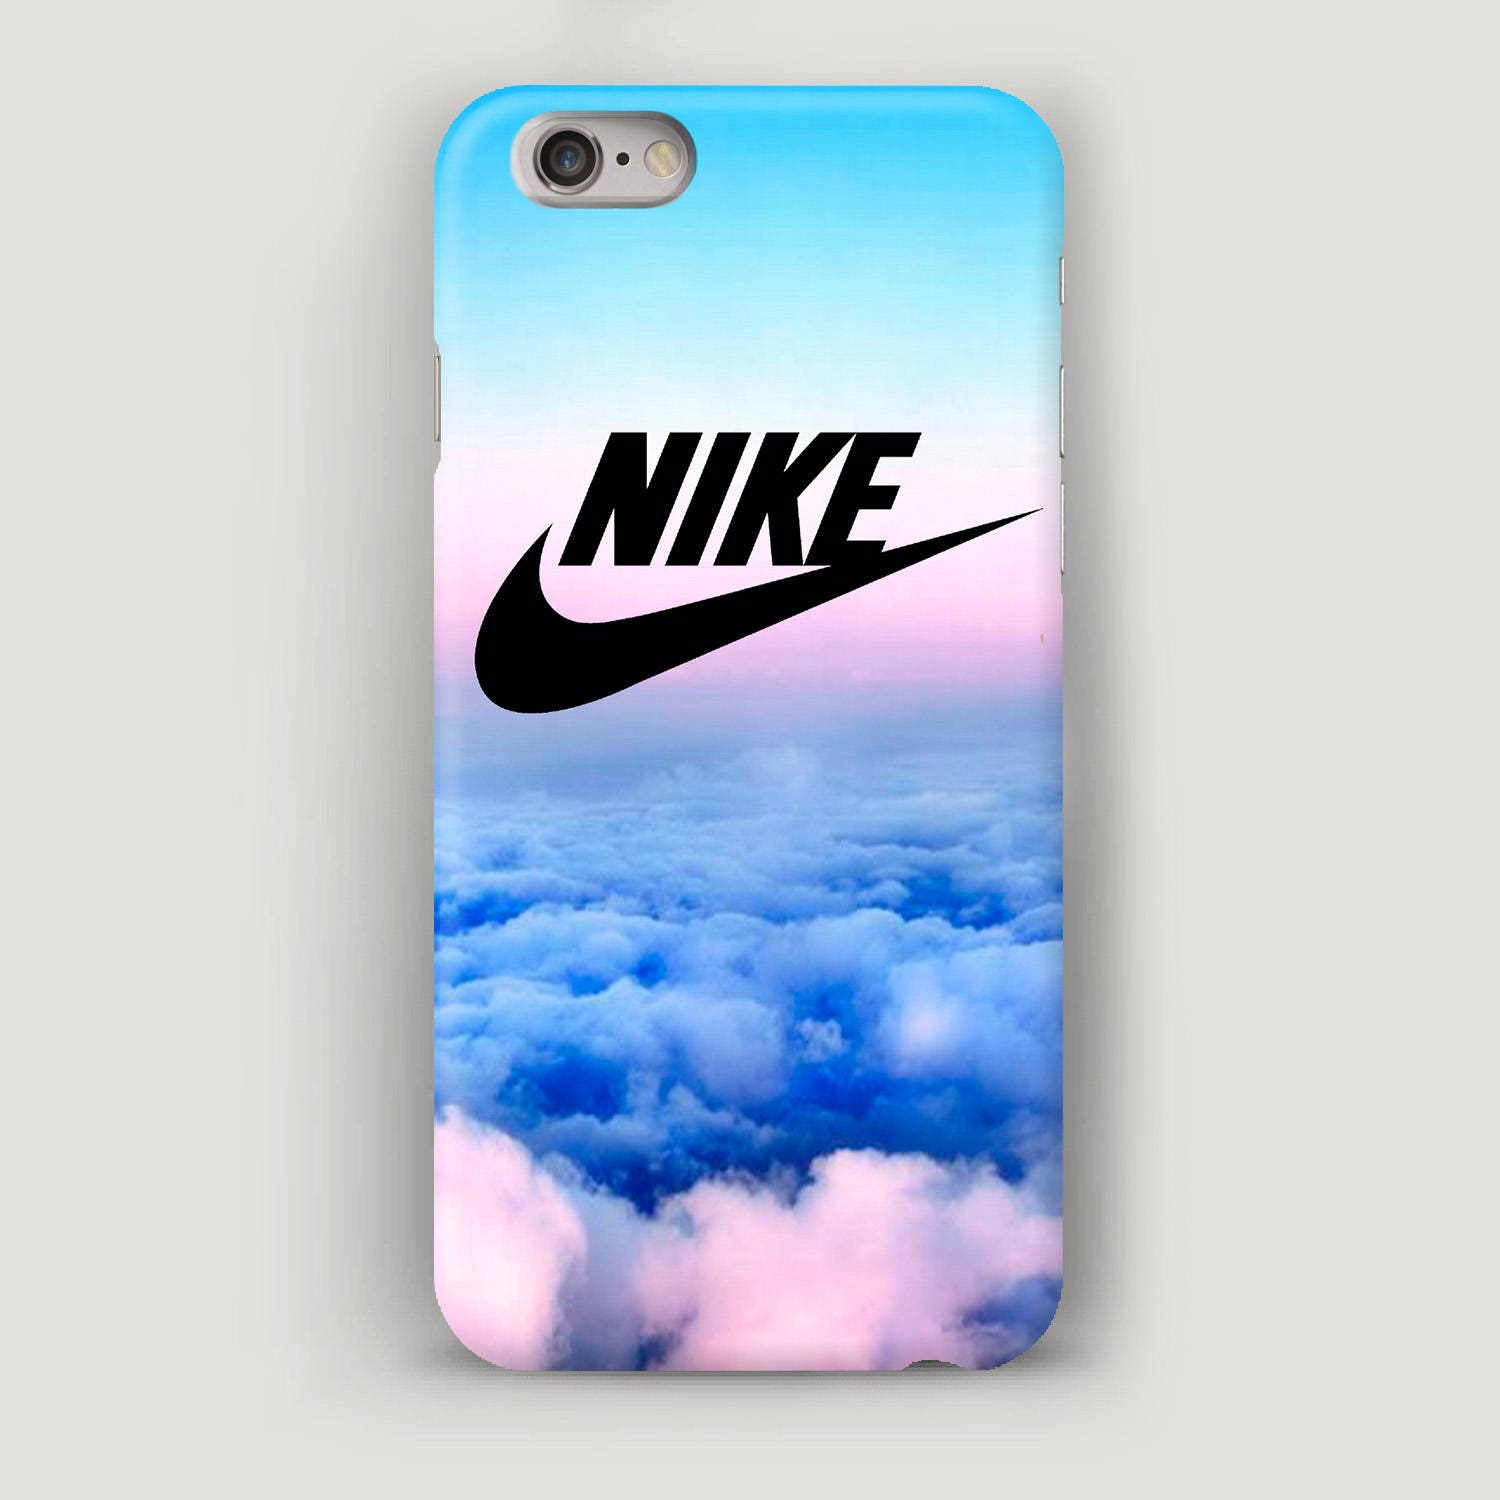 size 40 e0927 19134 Clouds iPhone 7 Case, Sky iPhone 6 Plus Case, iPhone X Case, Cute Phone  Case, Nike Phone Case, Nike iPhone 6S Case, iPhone 8 Cover